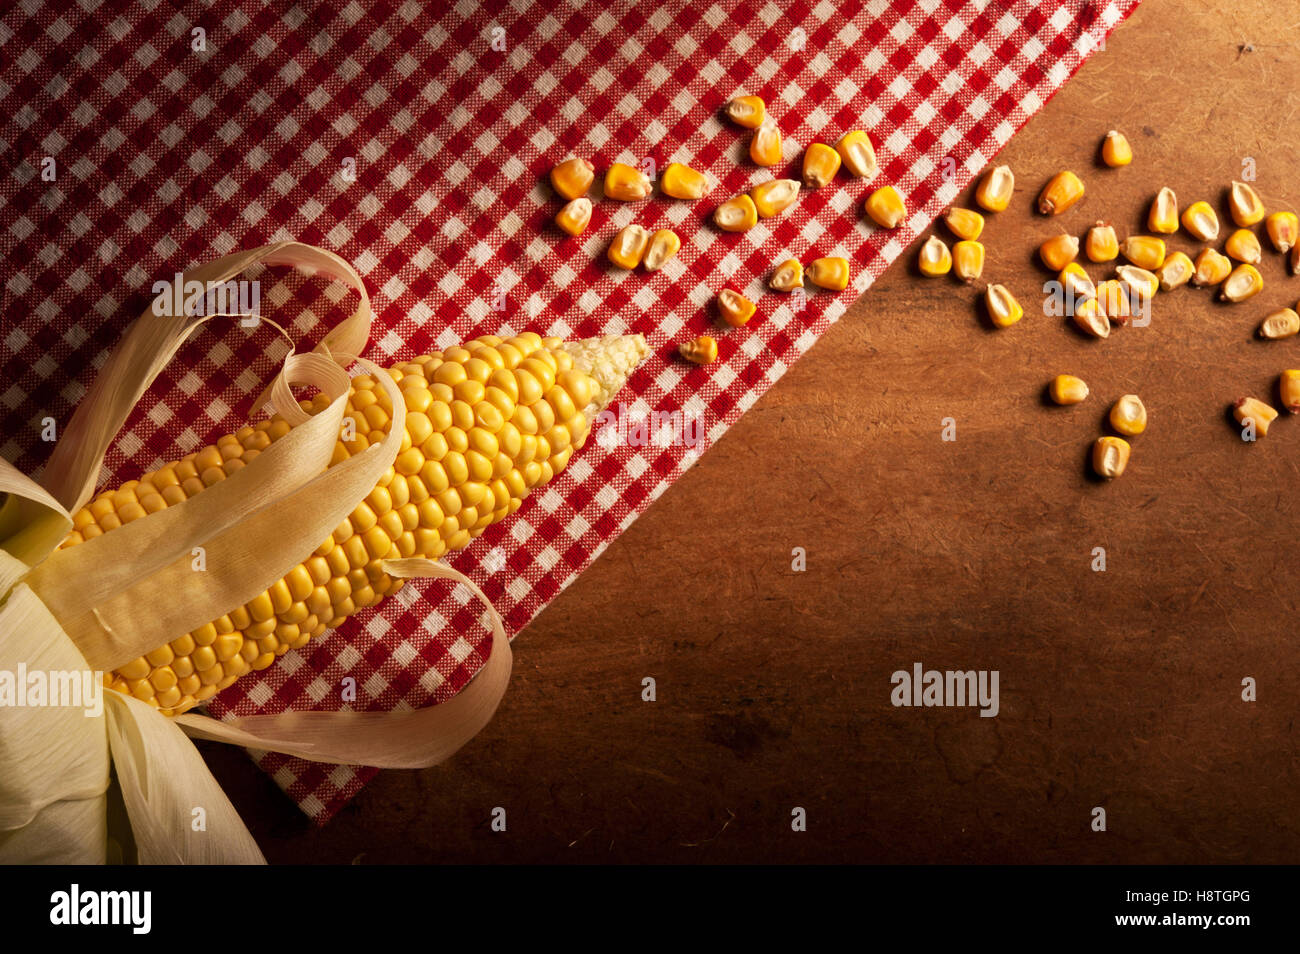 corn maize lying lying on red dish-cloth in rustic style - Stock Image